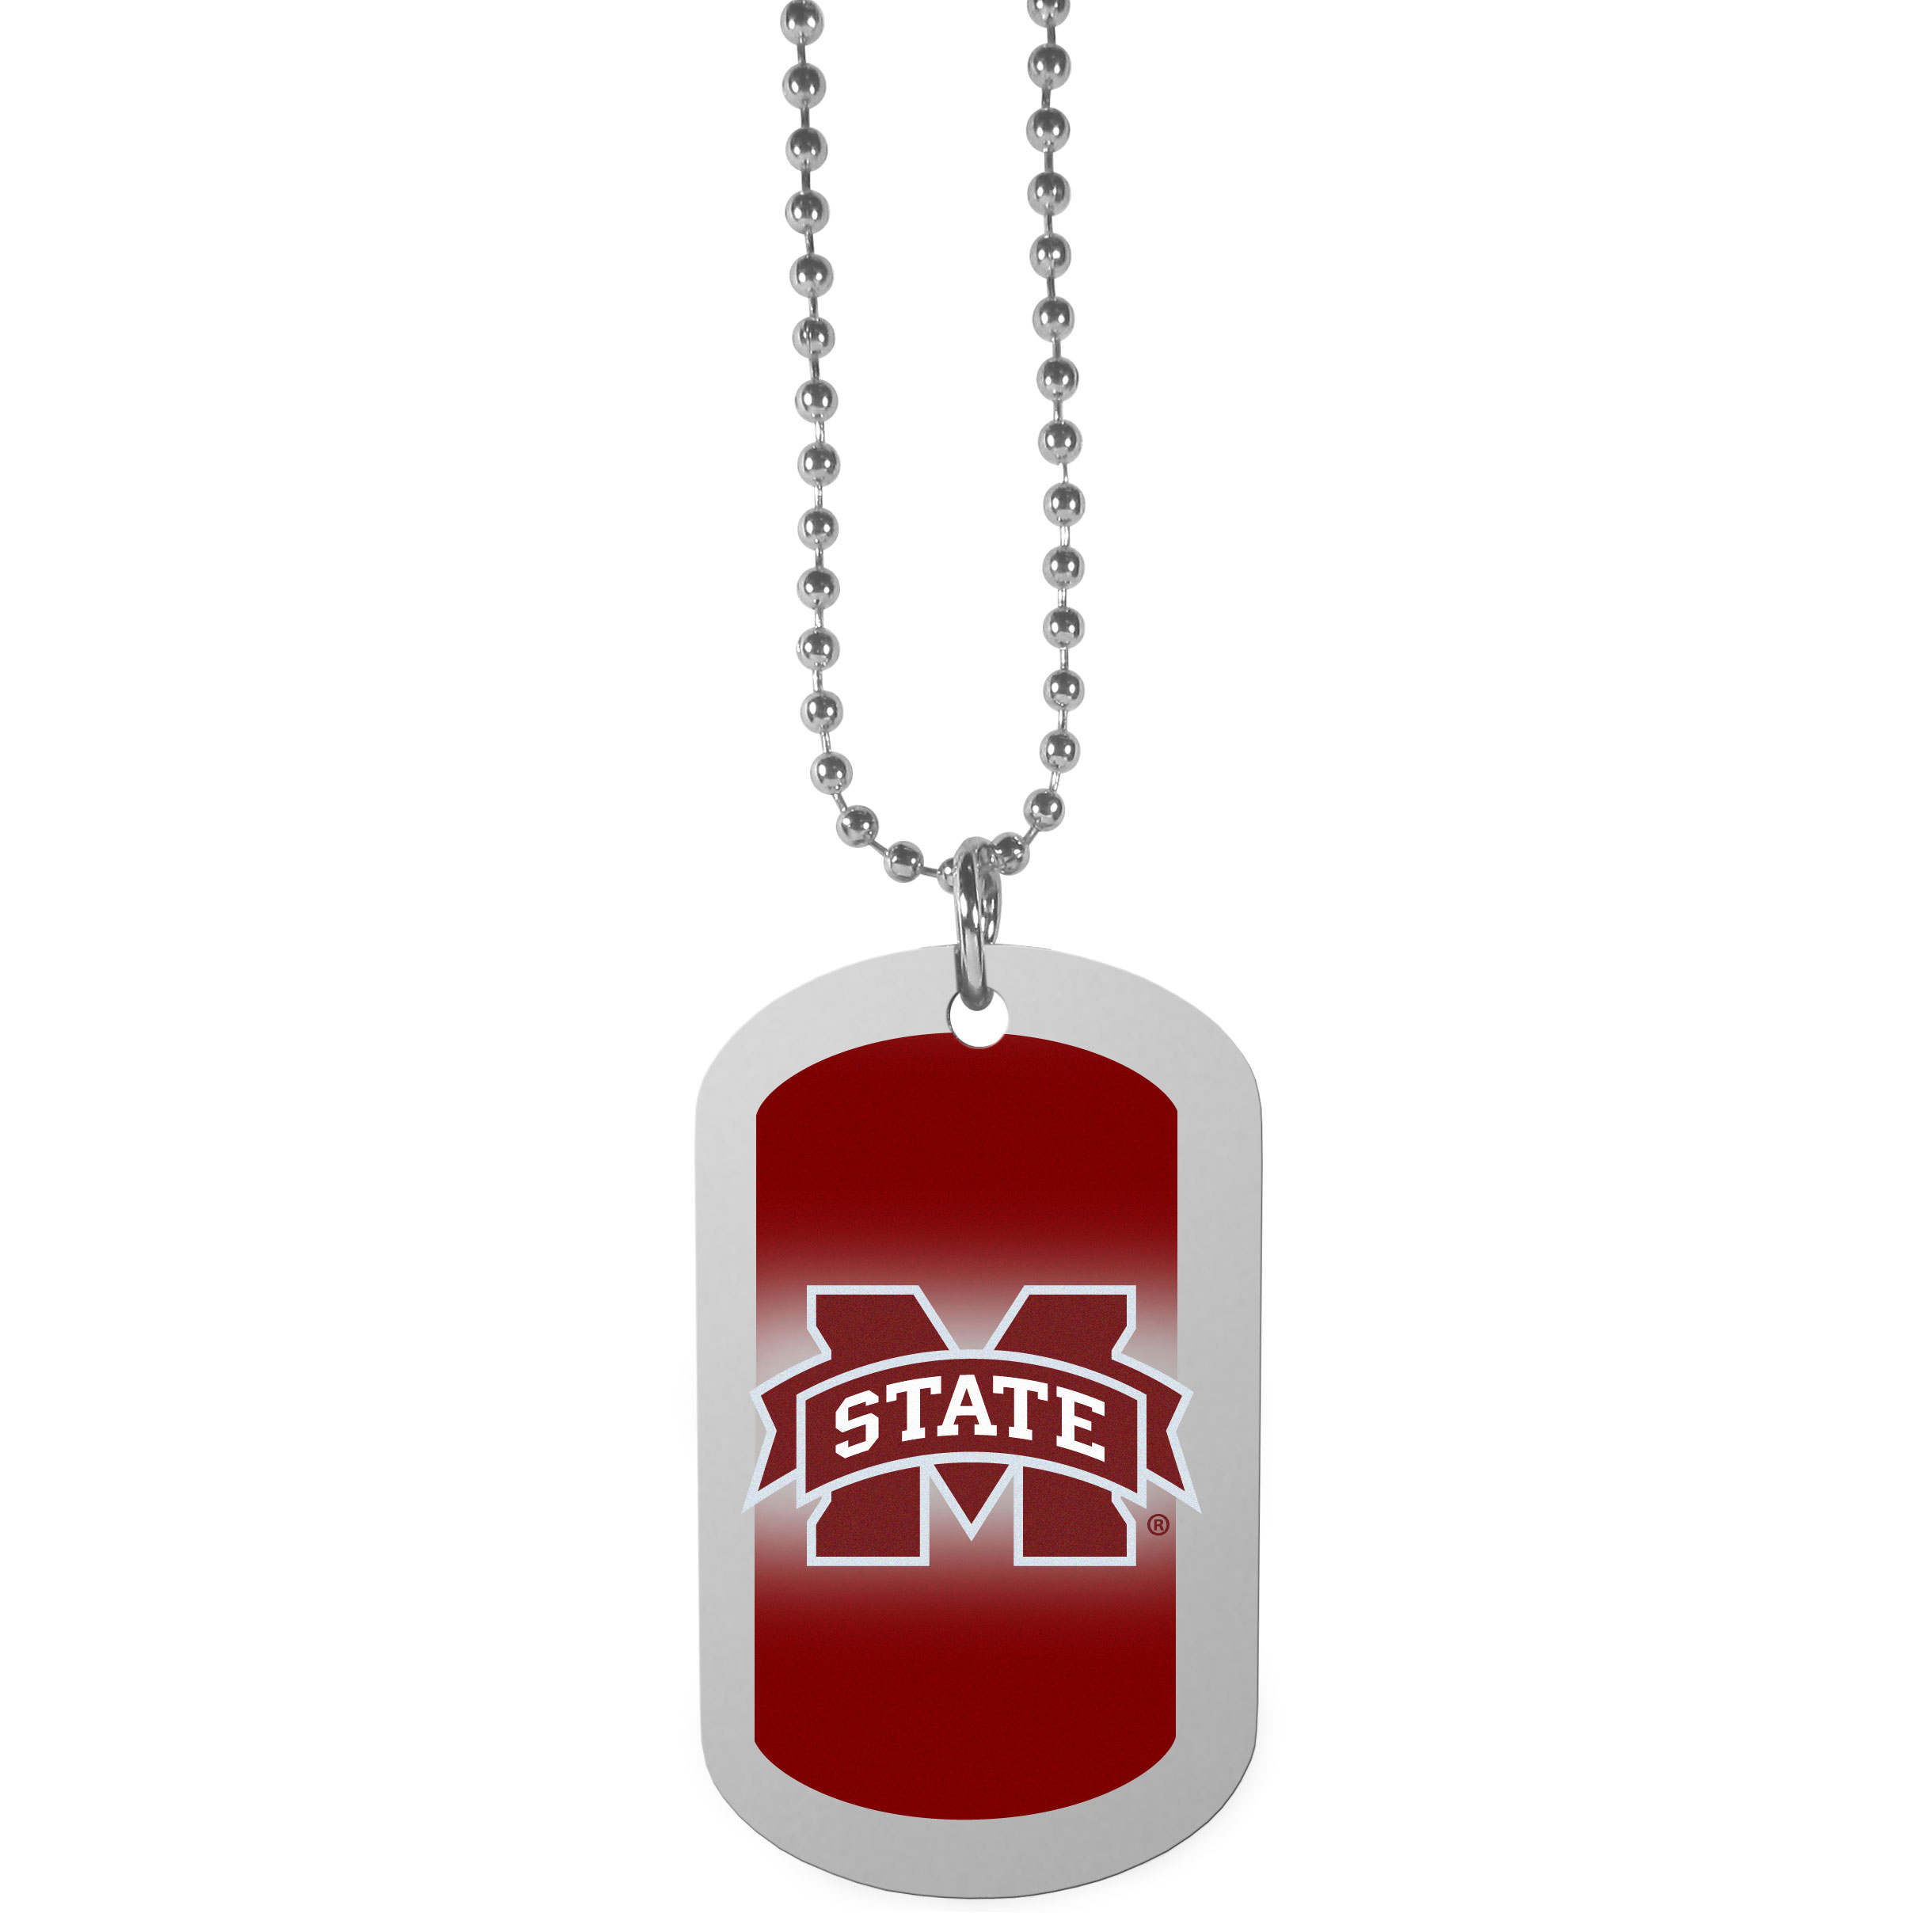 Mississippi St. Bulldogs Team Tag Necklace - Dog tag necklaces are a fashion statement that is here to stay. The sporty version of the classic tag features a gradient print in team colors featuring a full color team logo over a high polish tag to create a bold and sporty look. The tag comes on a 26 inch ball chain with a ball and joint clasp. Any Mississippi St. Bulldogs would be proud to wear this attractive fashion accessory.